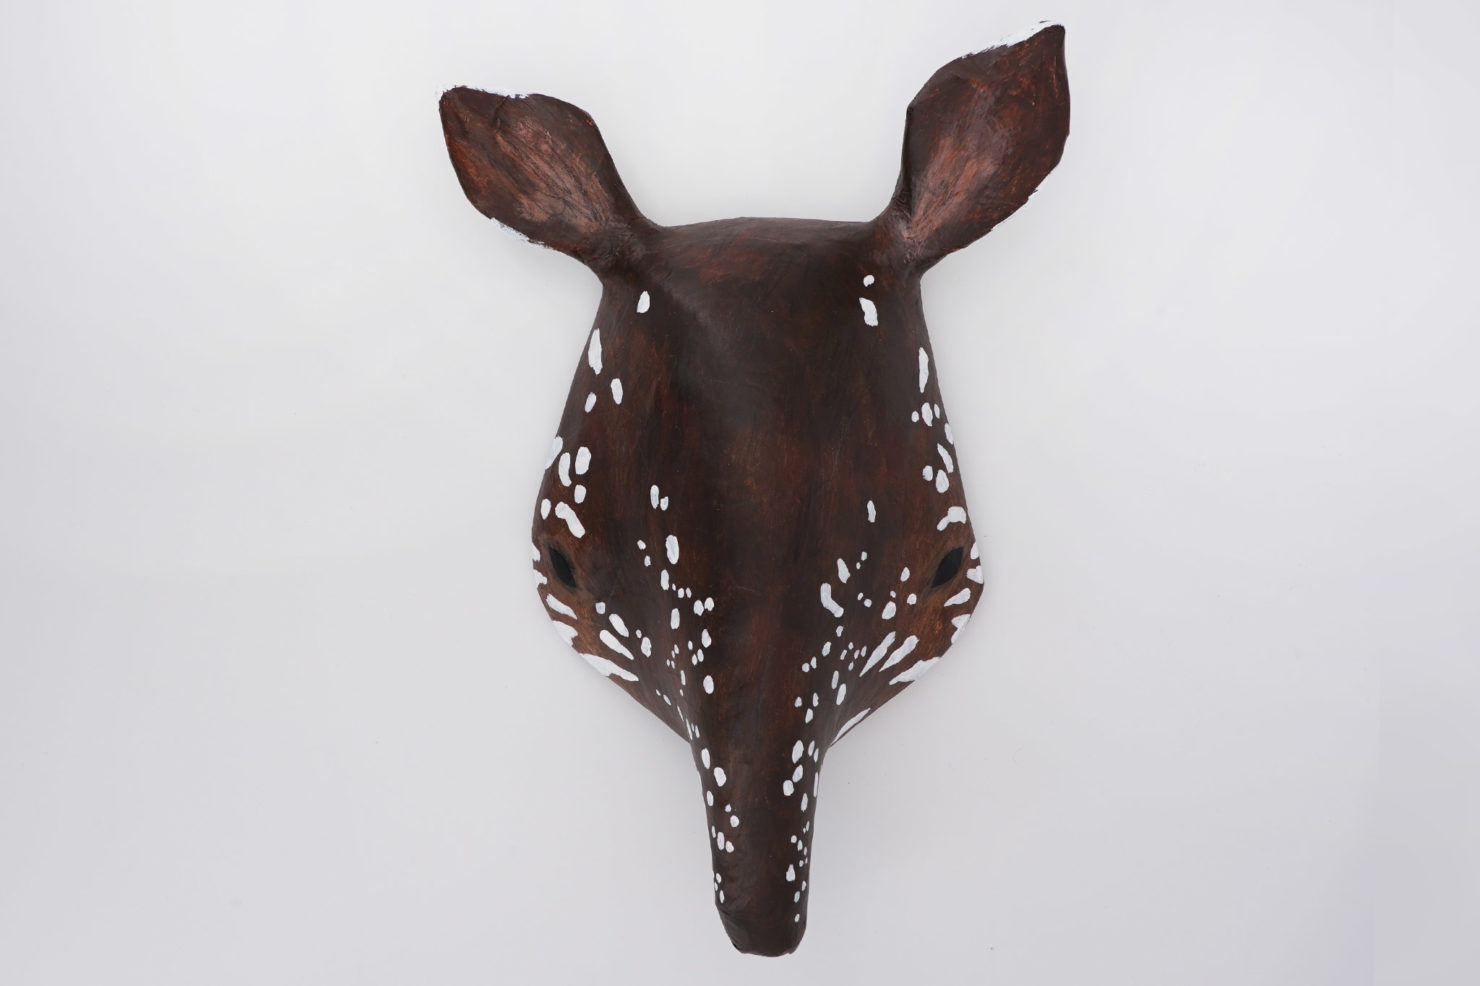 PAPER MACHE SCULPTURE TAPIR ABIGAIL BROWN